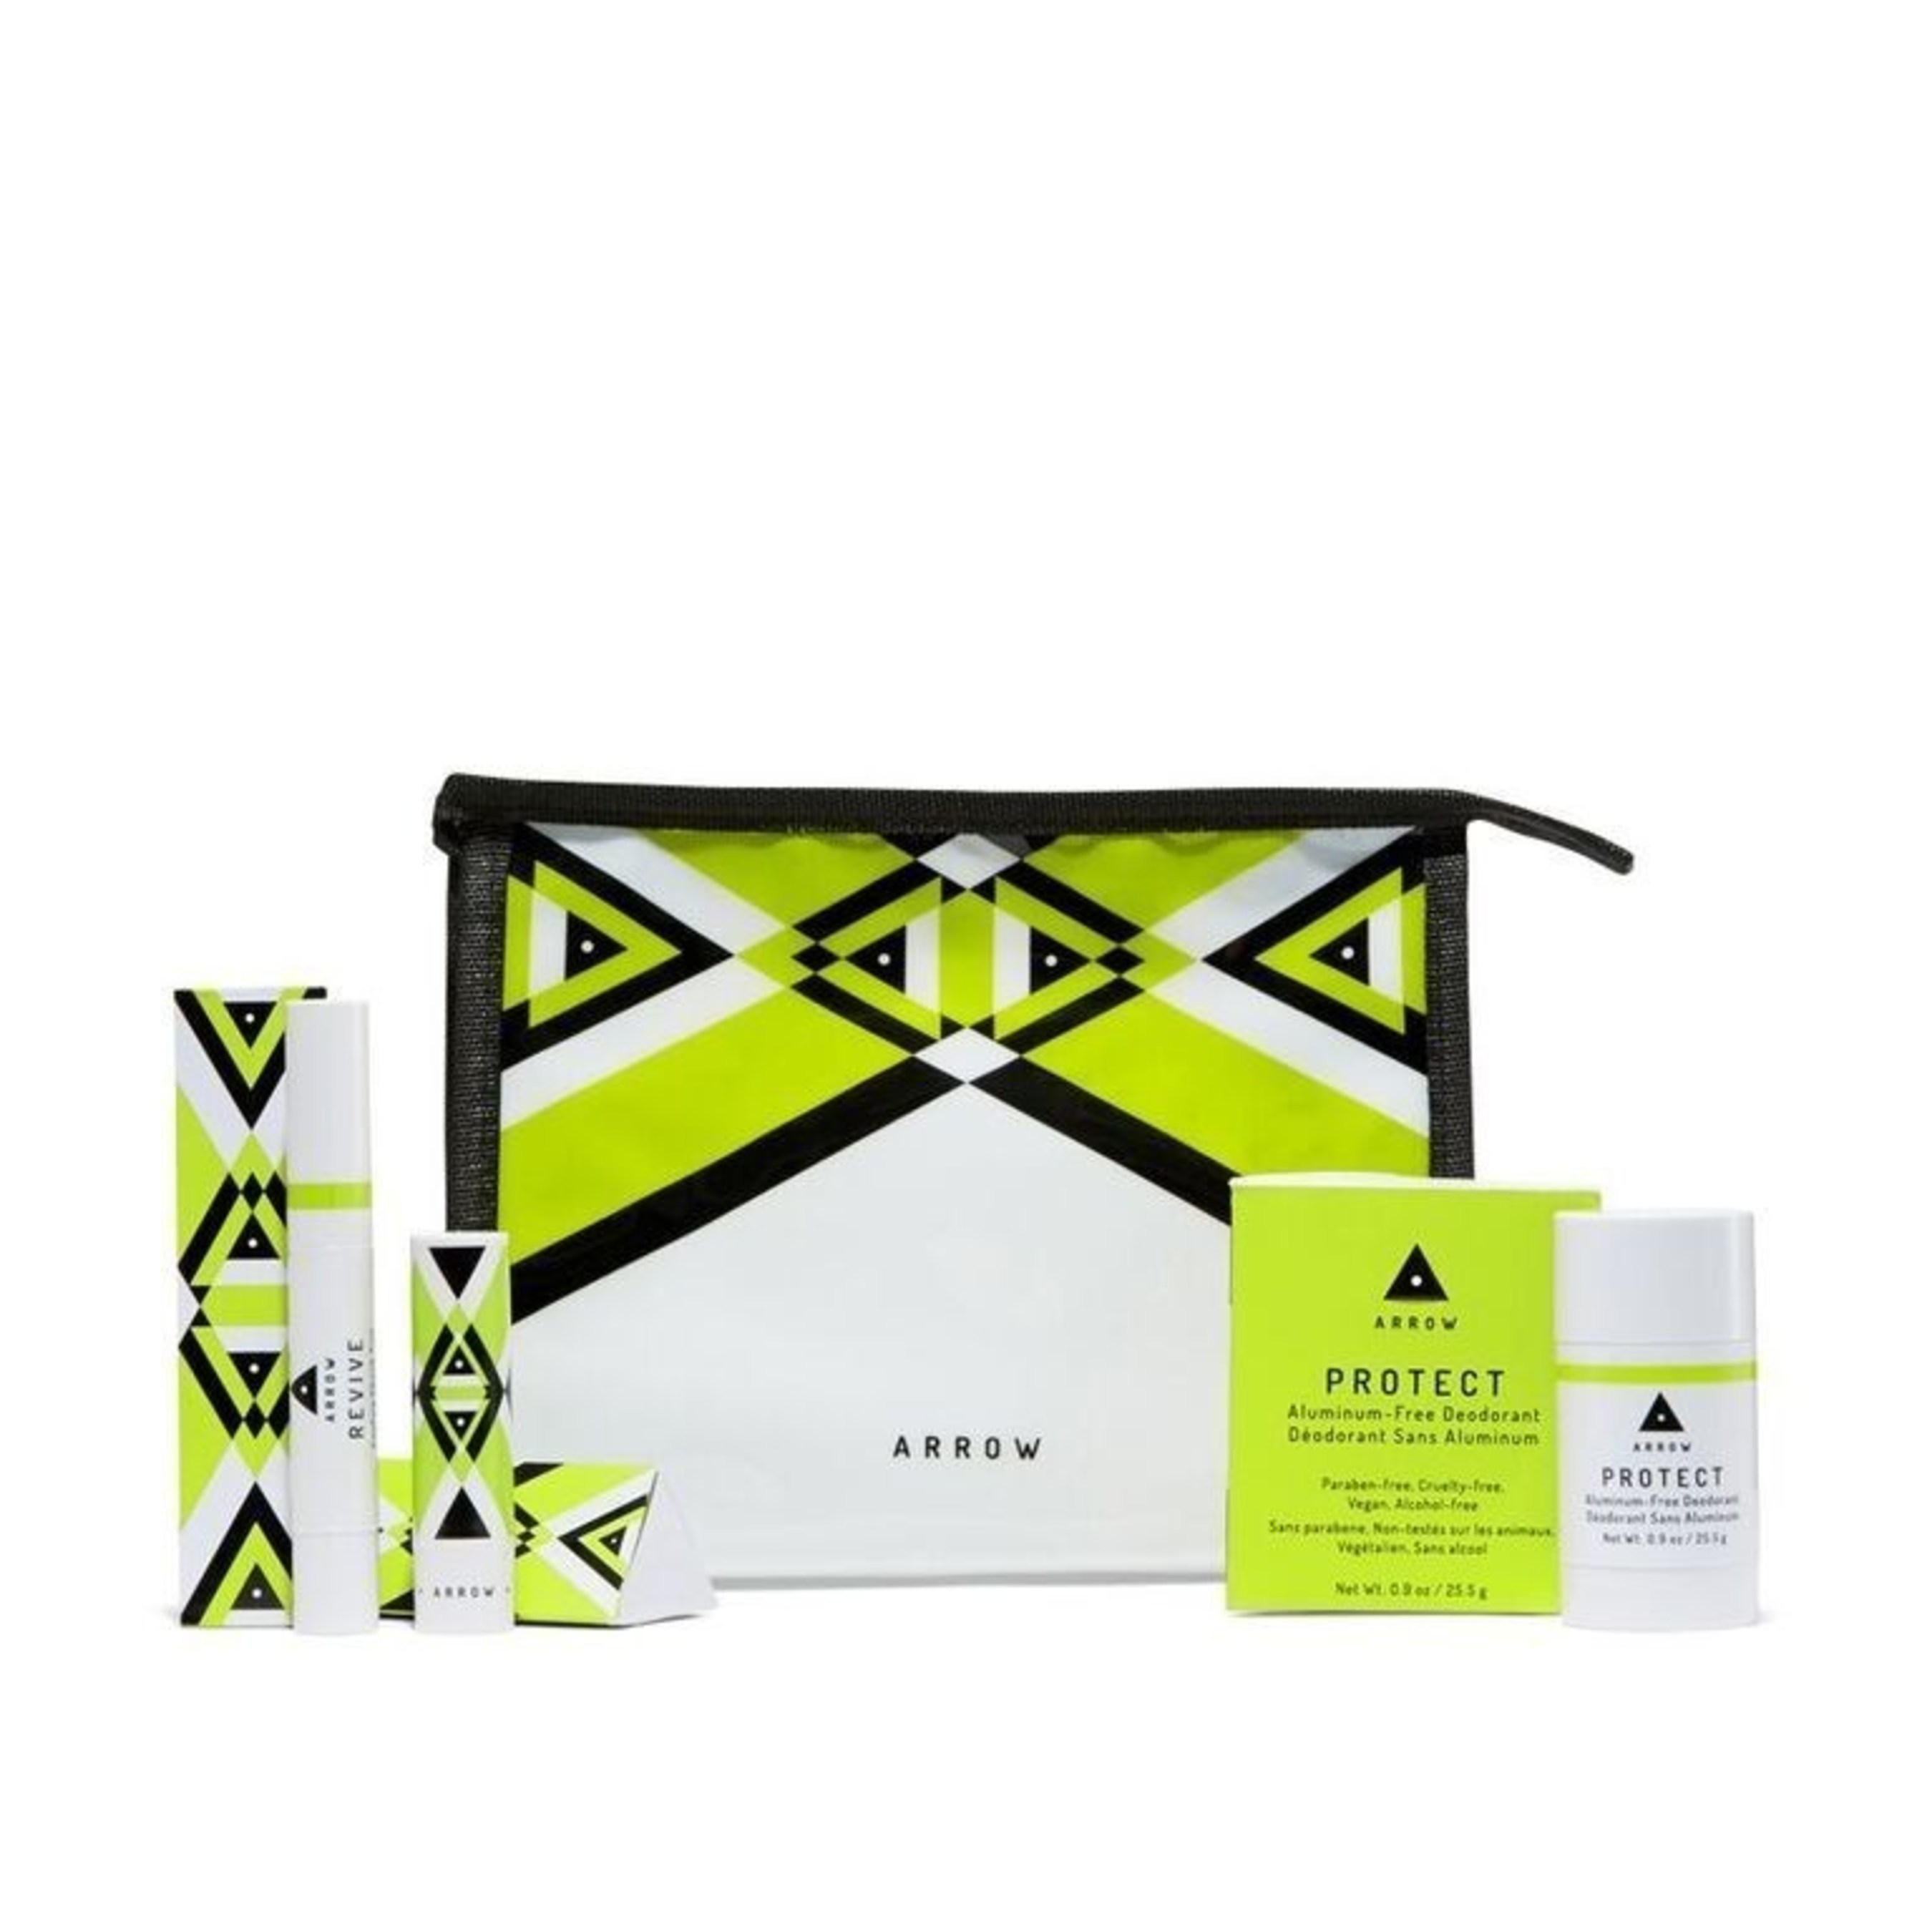 Birchbox Launches Athleisure Inspired Brand Called Arrow Data Protection Policy Sans Image Courtesy Of